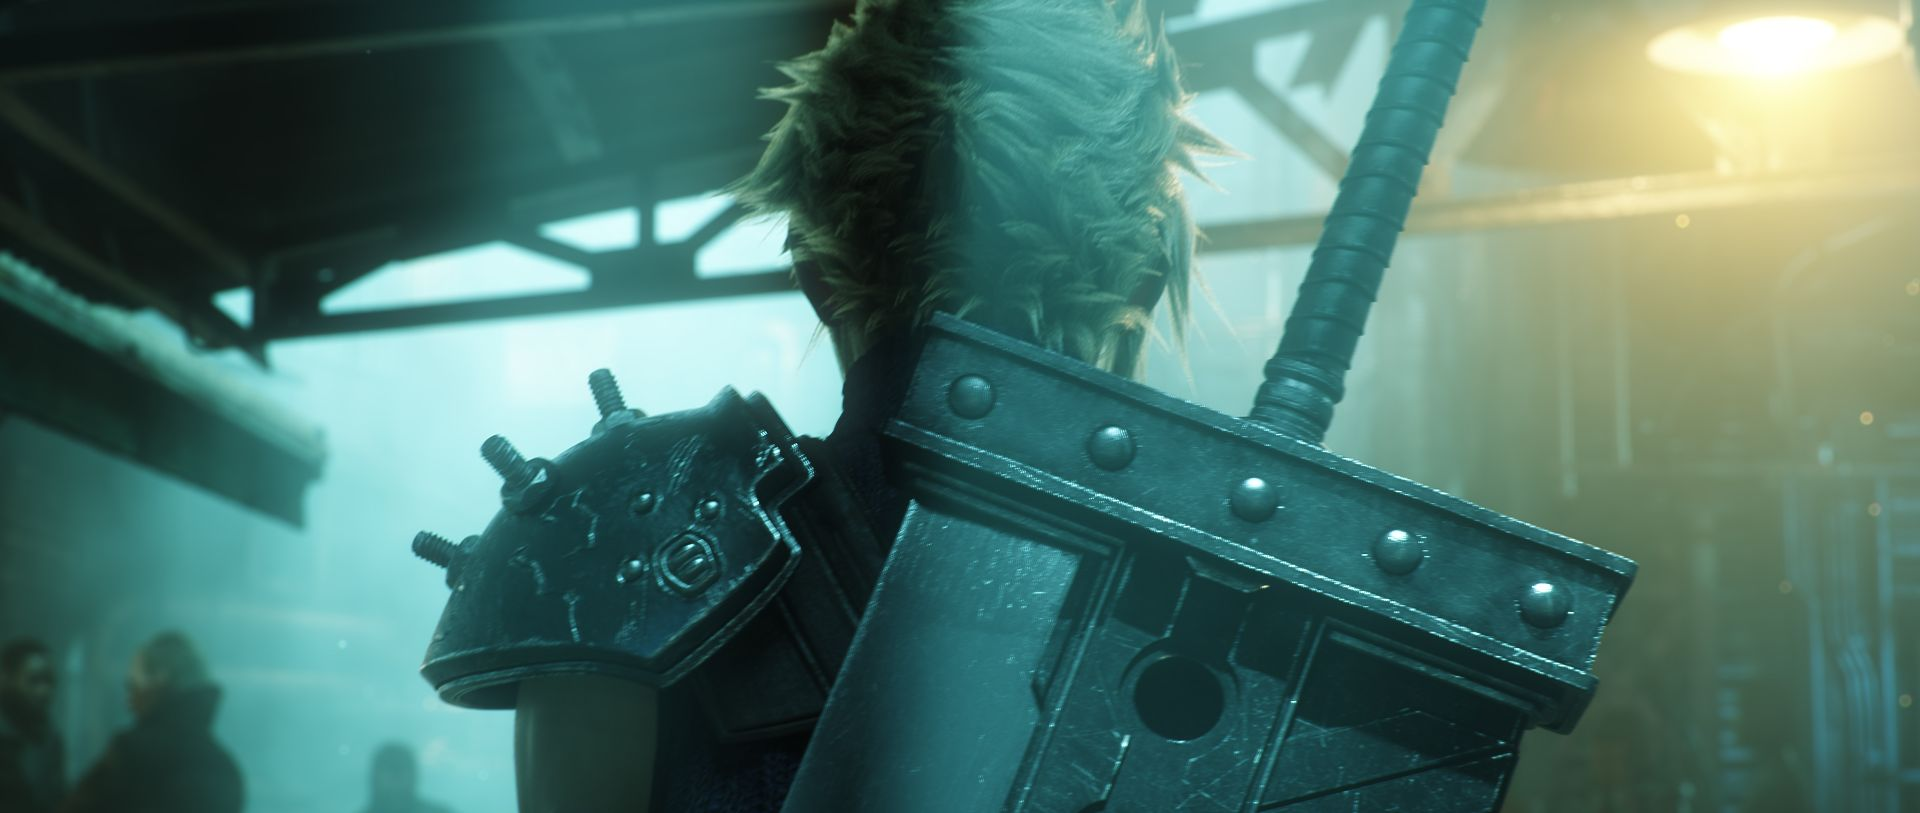 Games Inbox: Final Fantasy VII Remake release date, The Witcher 2 remake, and Dead Space remake